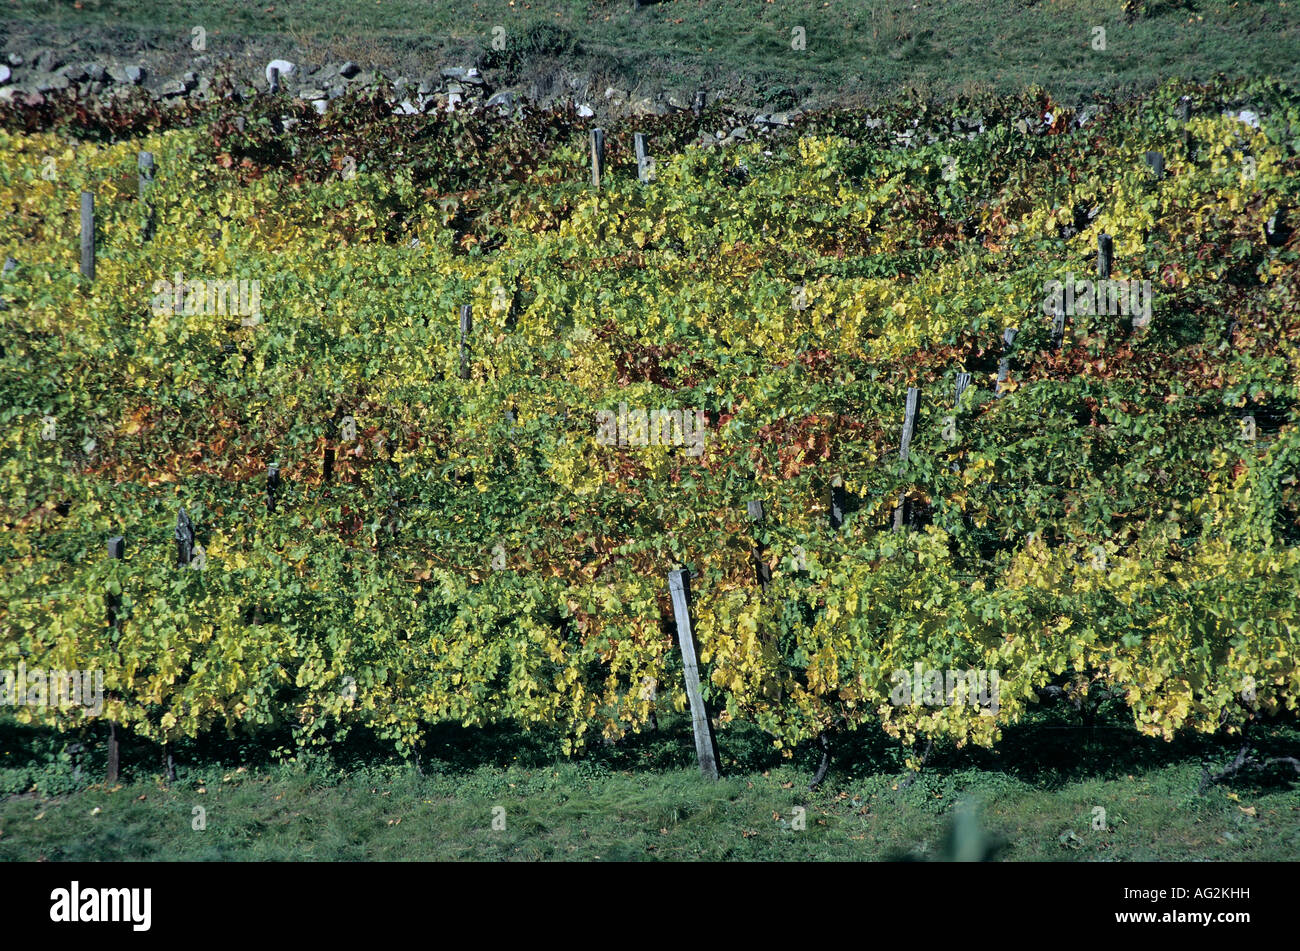 Weinberg im Herbst vineyard in autumn Stock Photo